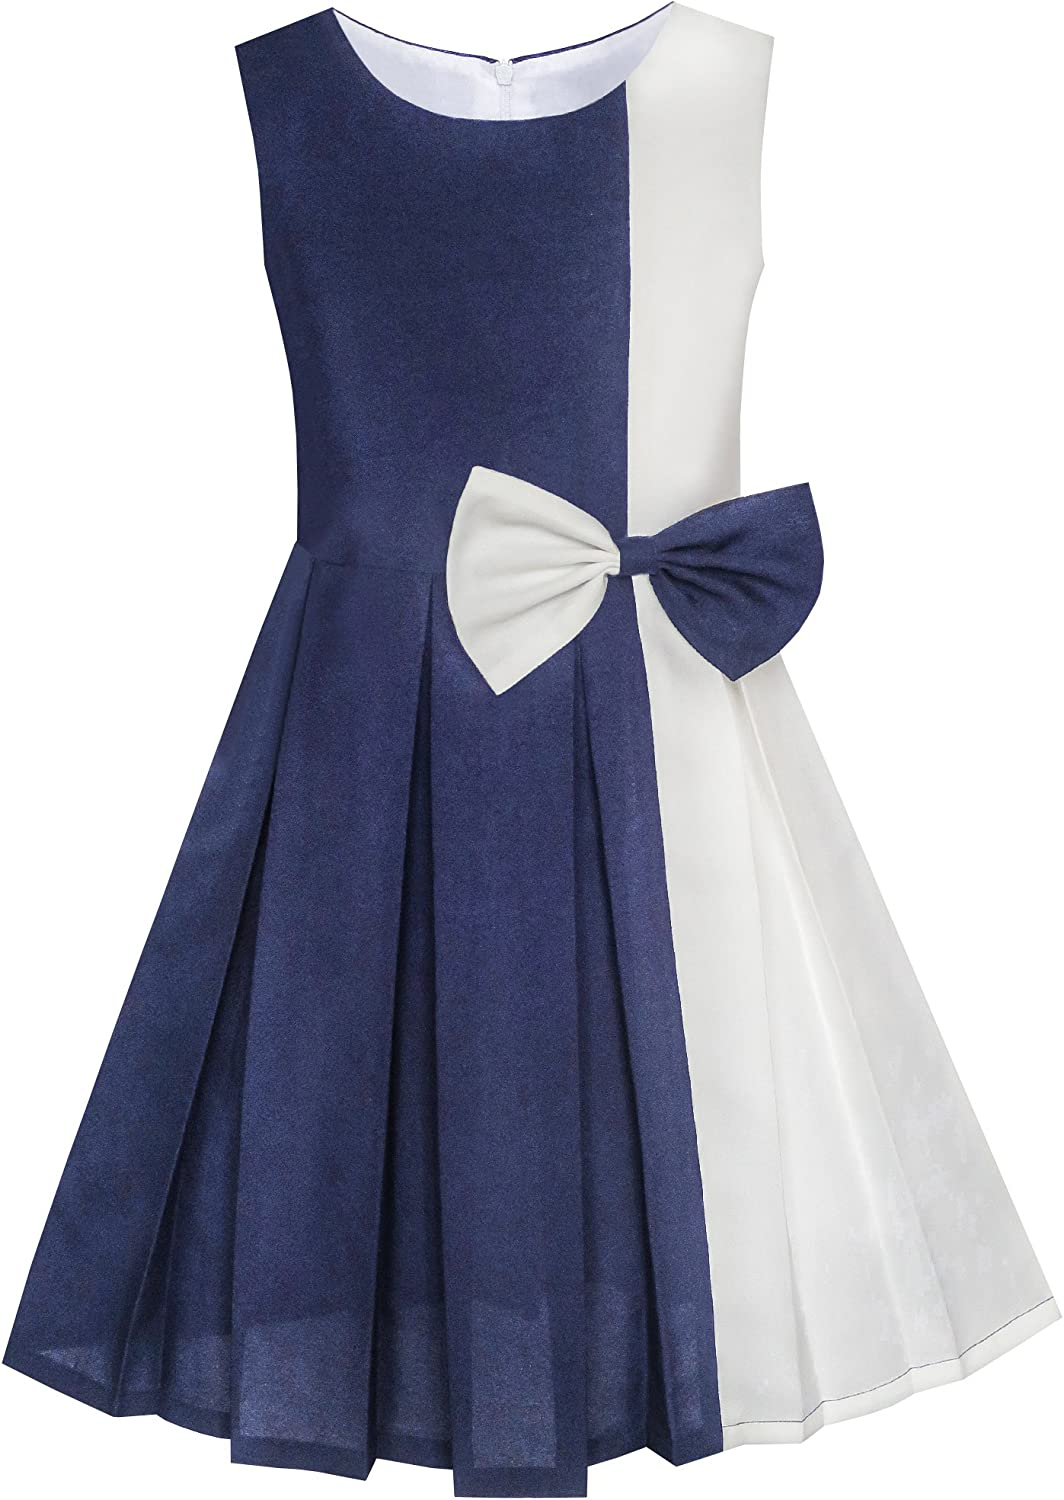 Sunny Fashion Girls Dress Color Block Contrast Bow Tie Everyday Party Age 4-14 Years